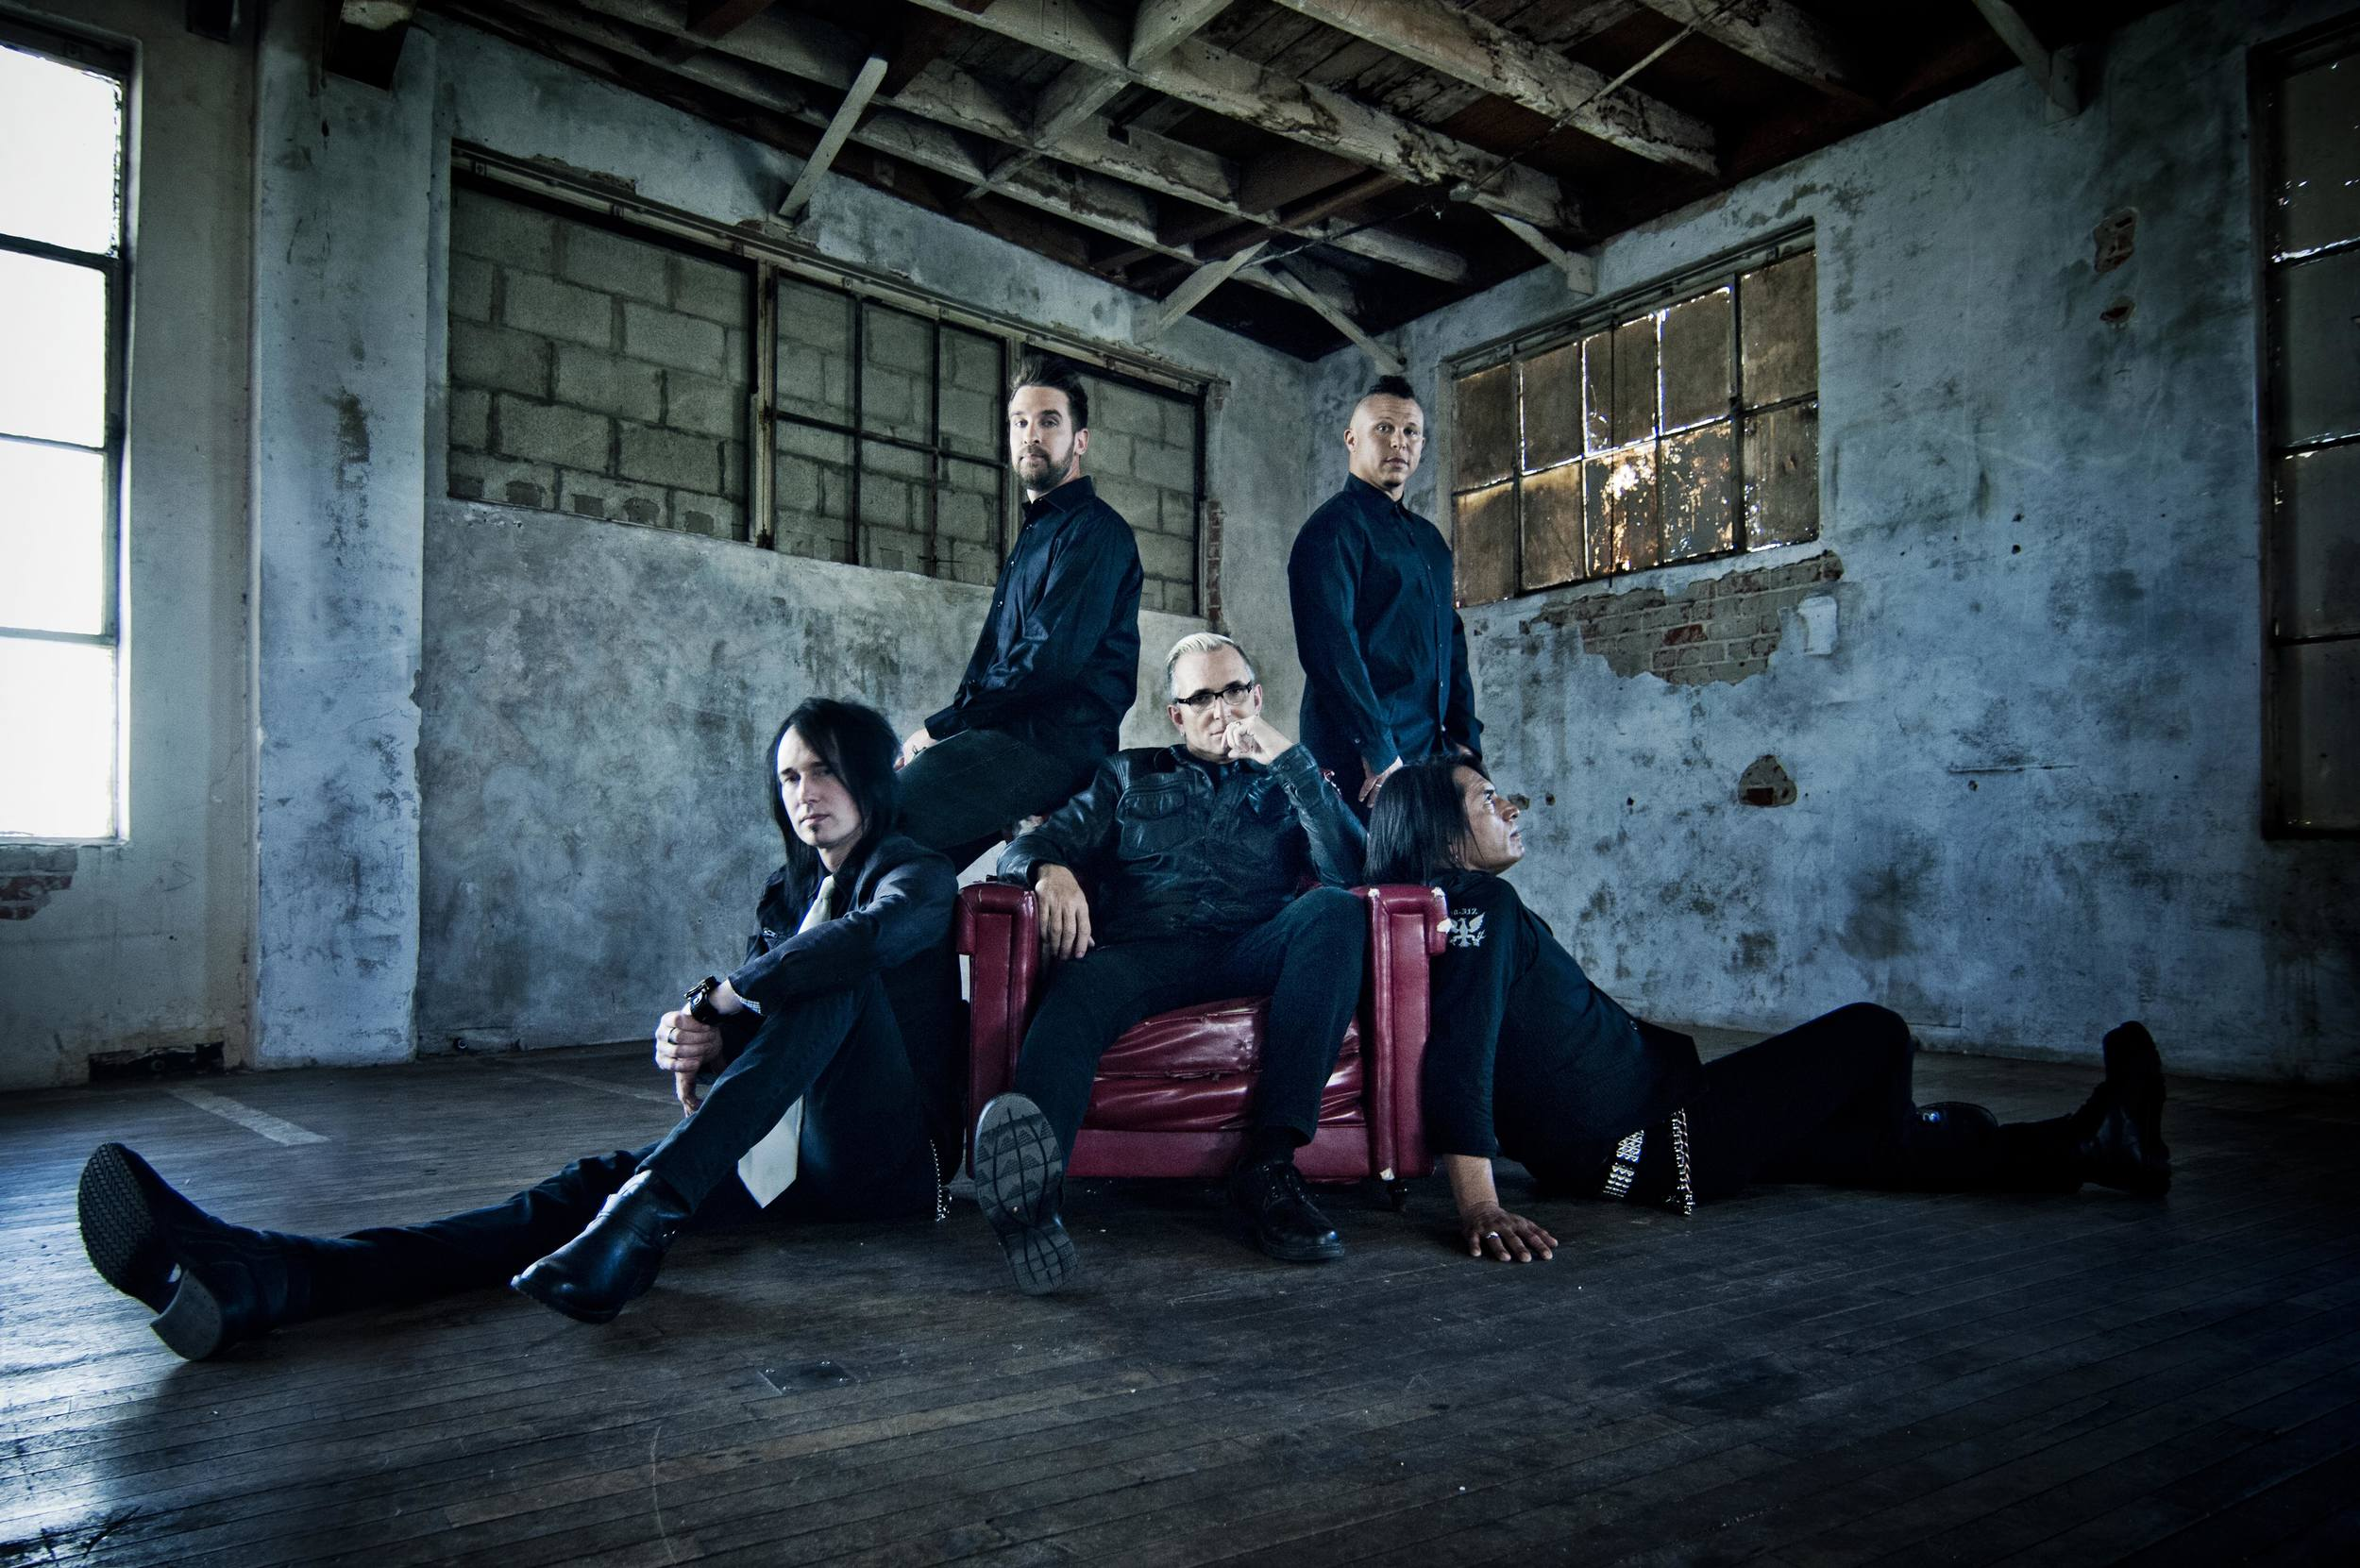 Valley Forge Music Fair, valley Forge Casino Resort, Everclear, Music, Concert, King of Prussia, Valley Forge Music Fair